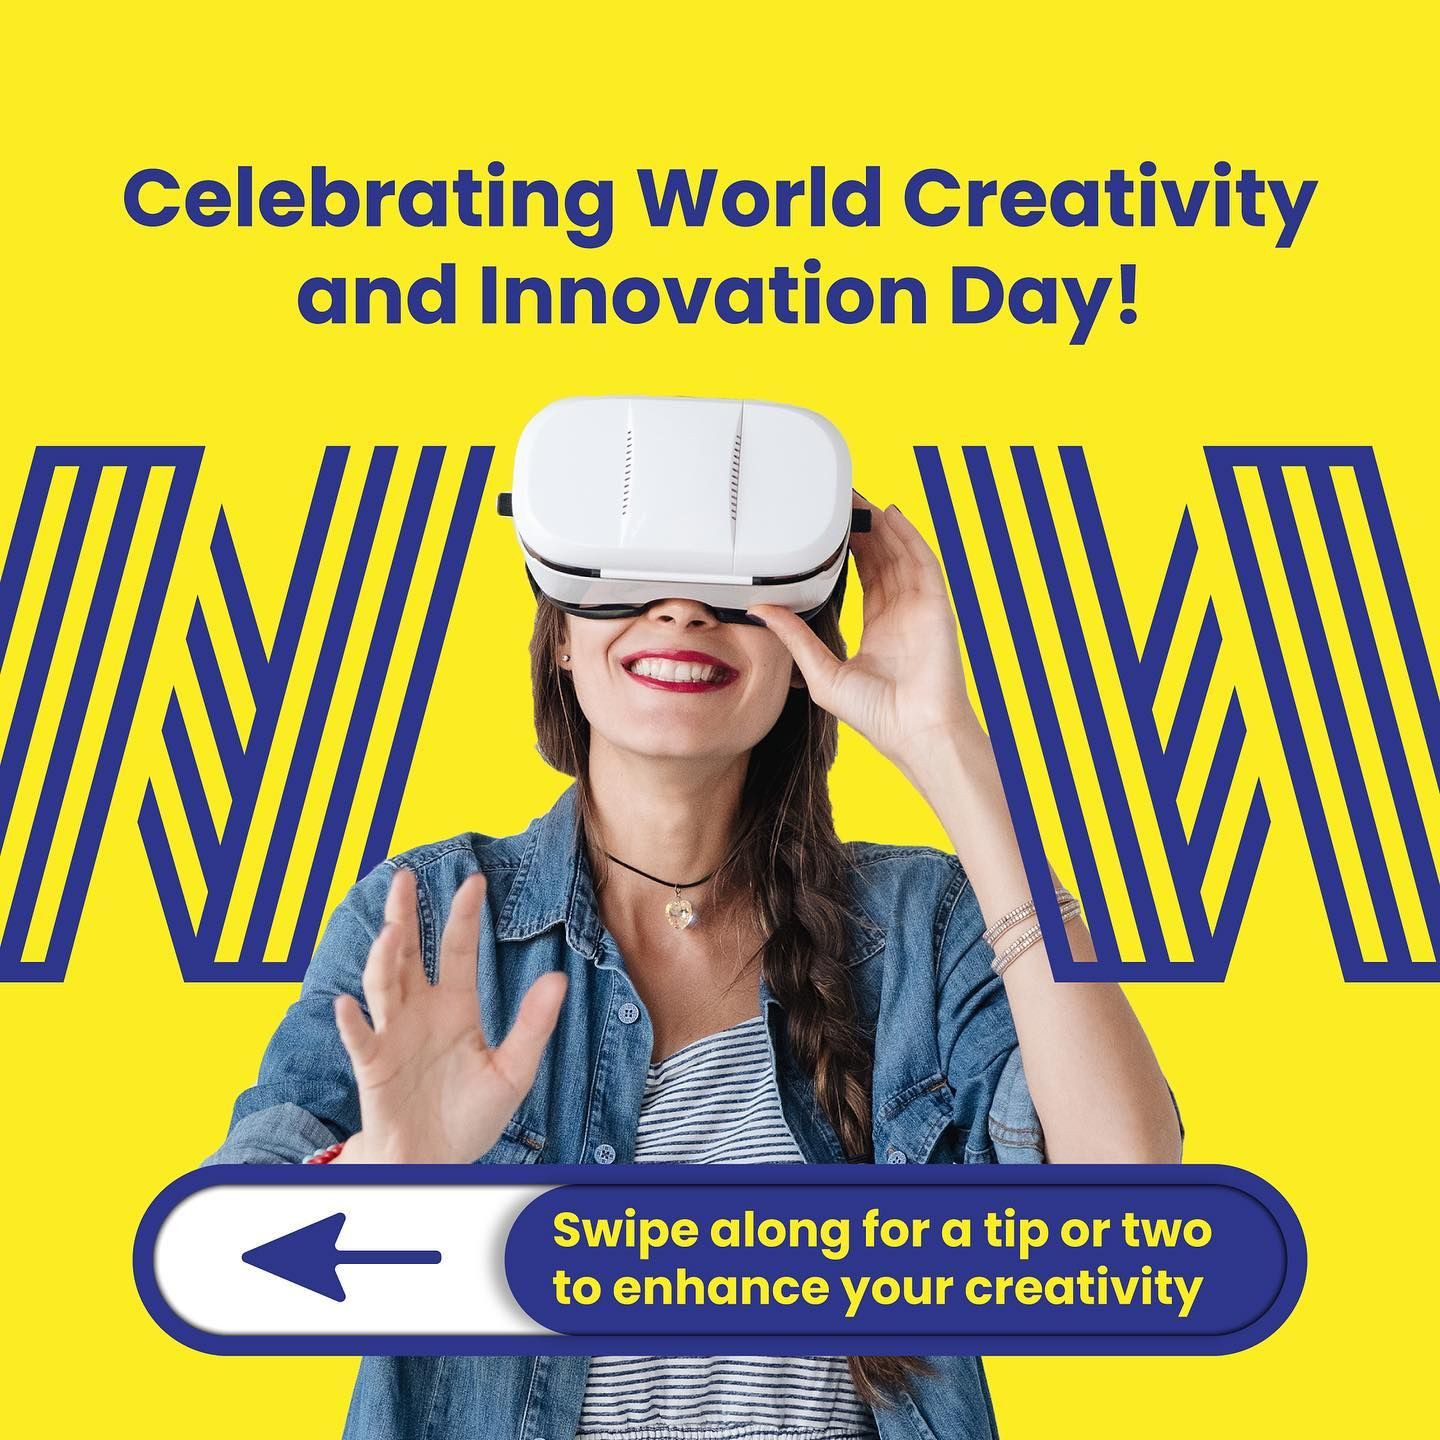 Happy World Creativity and Innovation Day!Take chancesDare to failBe inspired and inspiring. Today seems like a pretty good day to start. Take a chance on that new role, here. https://wowrecruitment.com.au//contact-us-2/#RecruitmentHappy